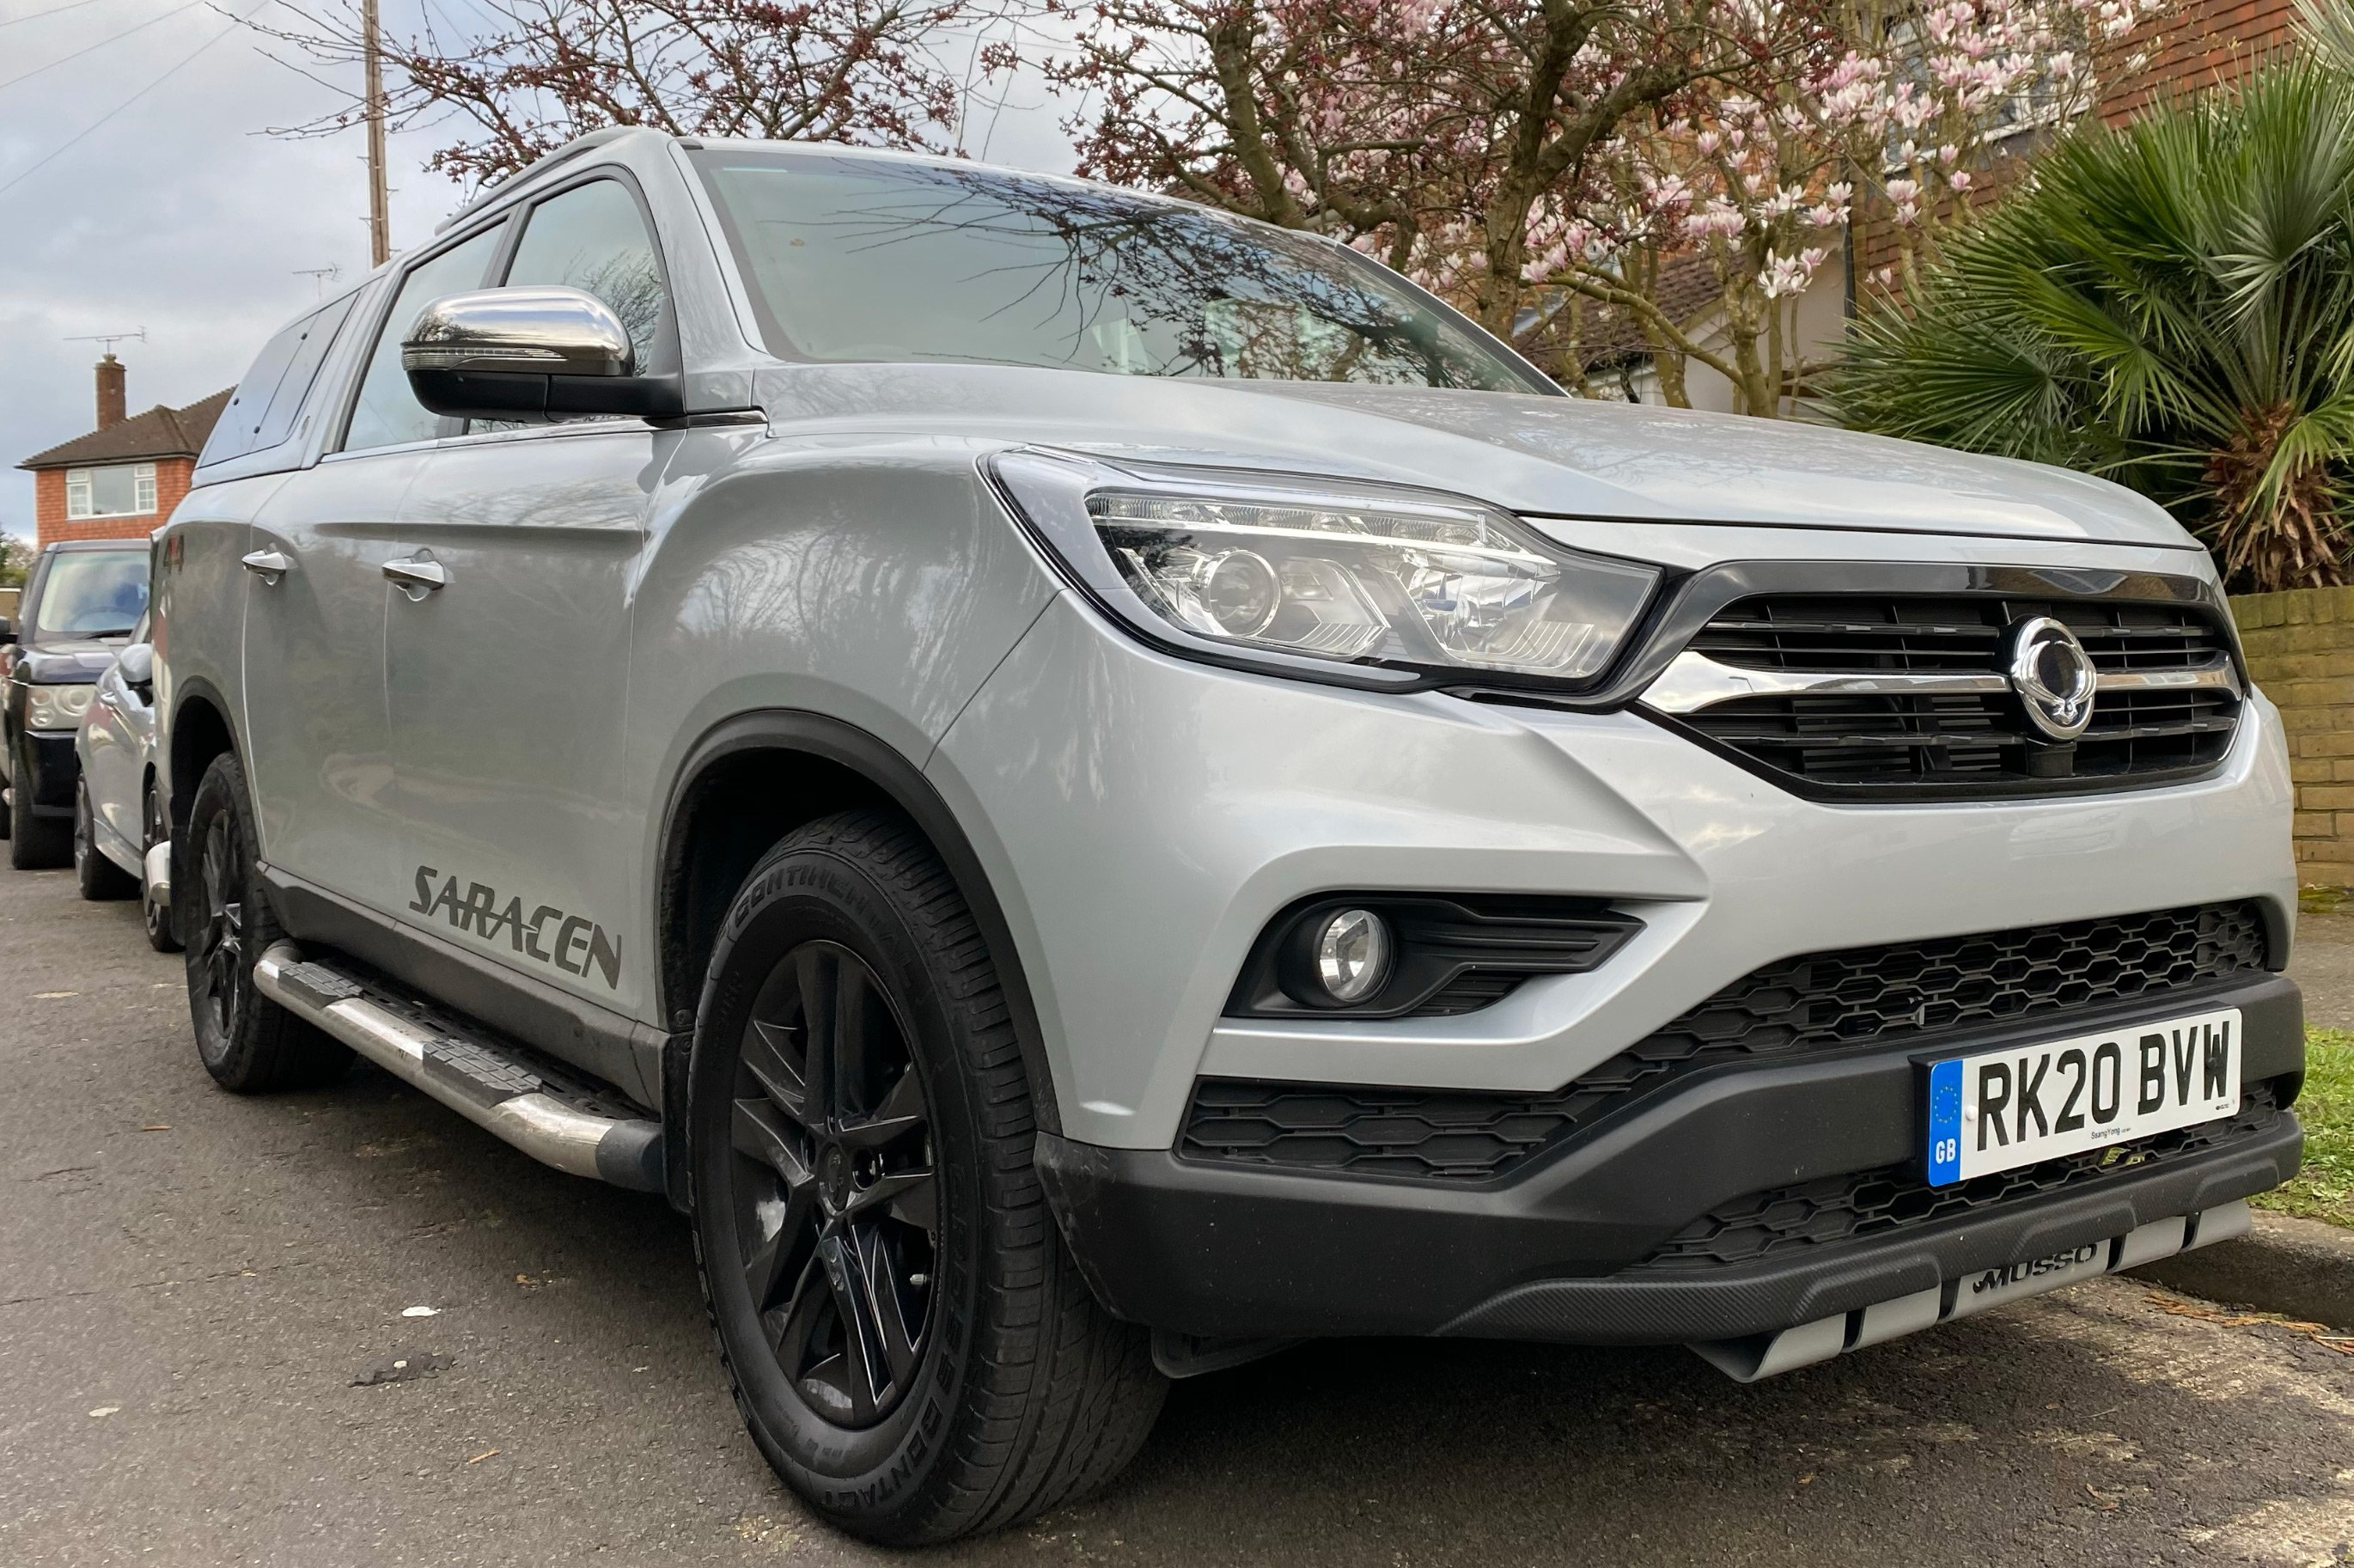 Ssangyong Musso parked on street